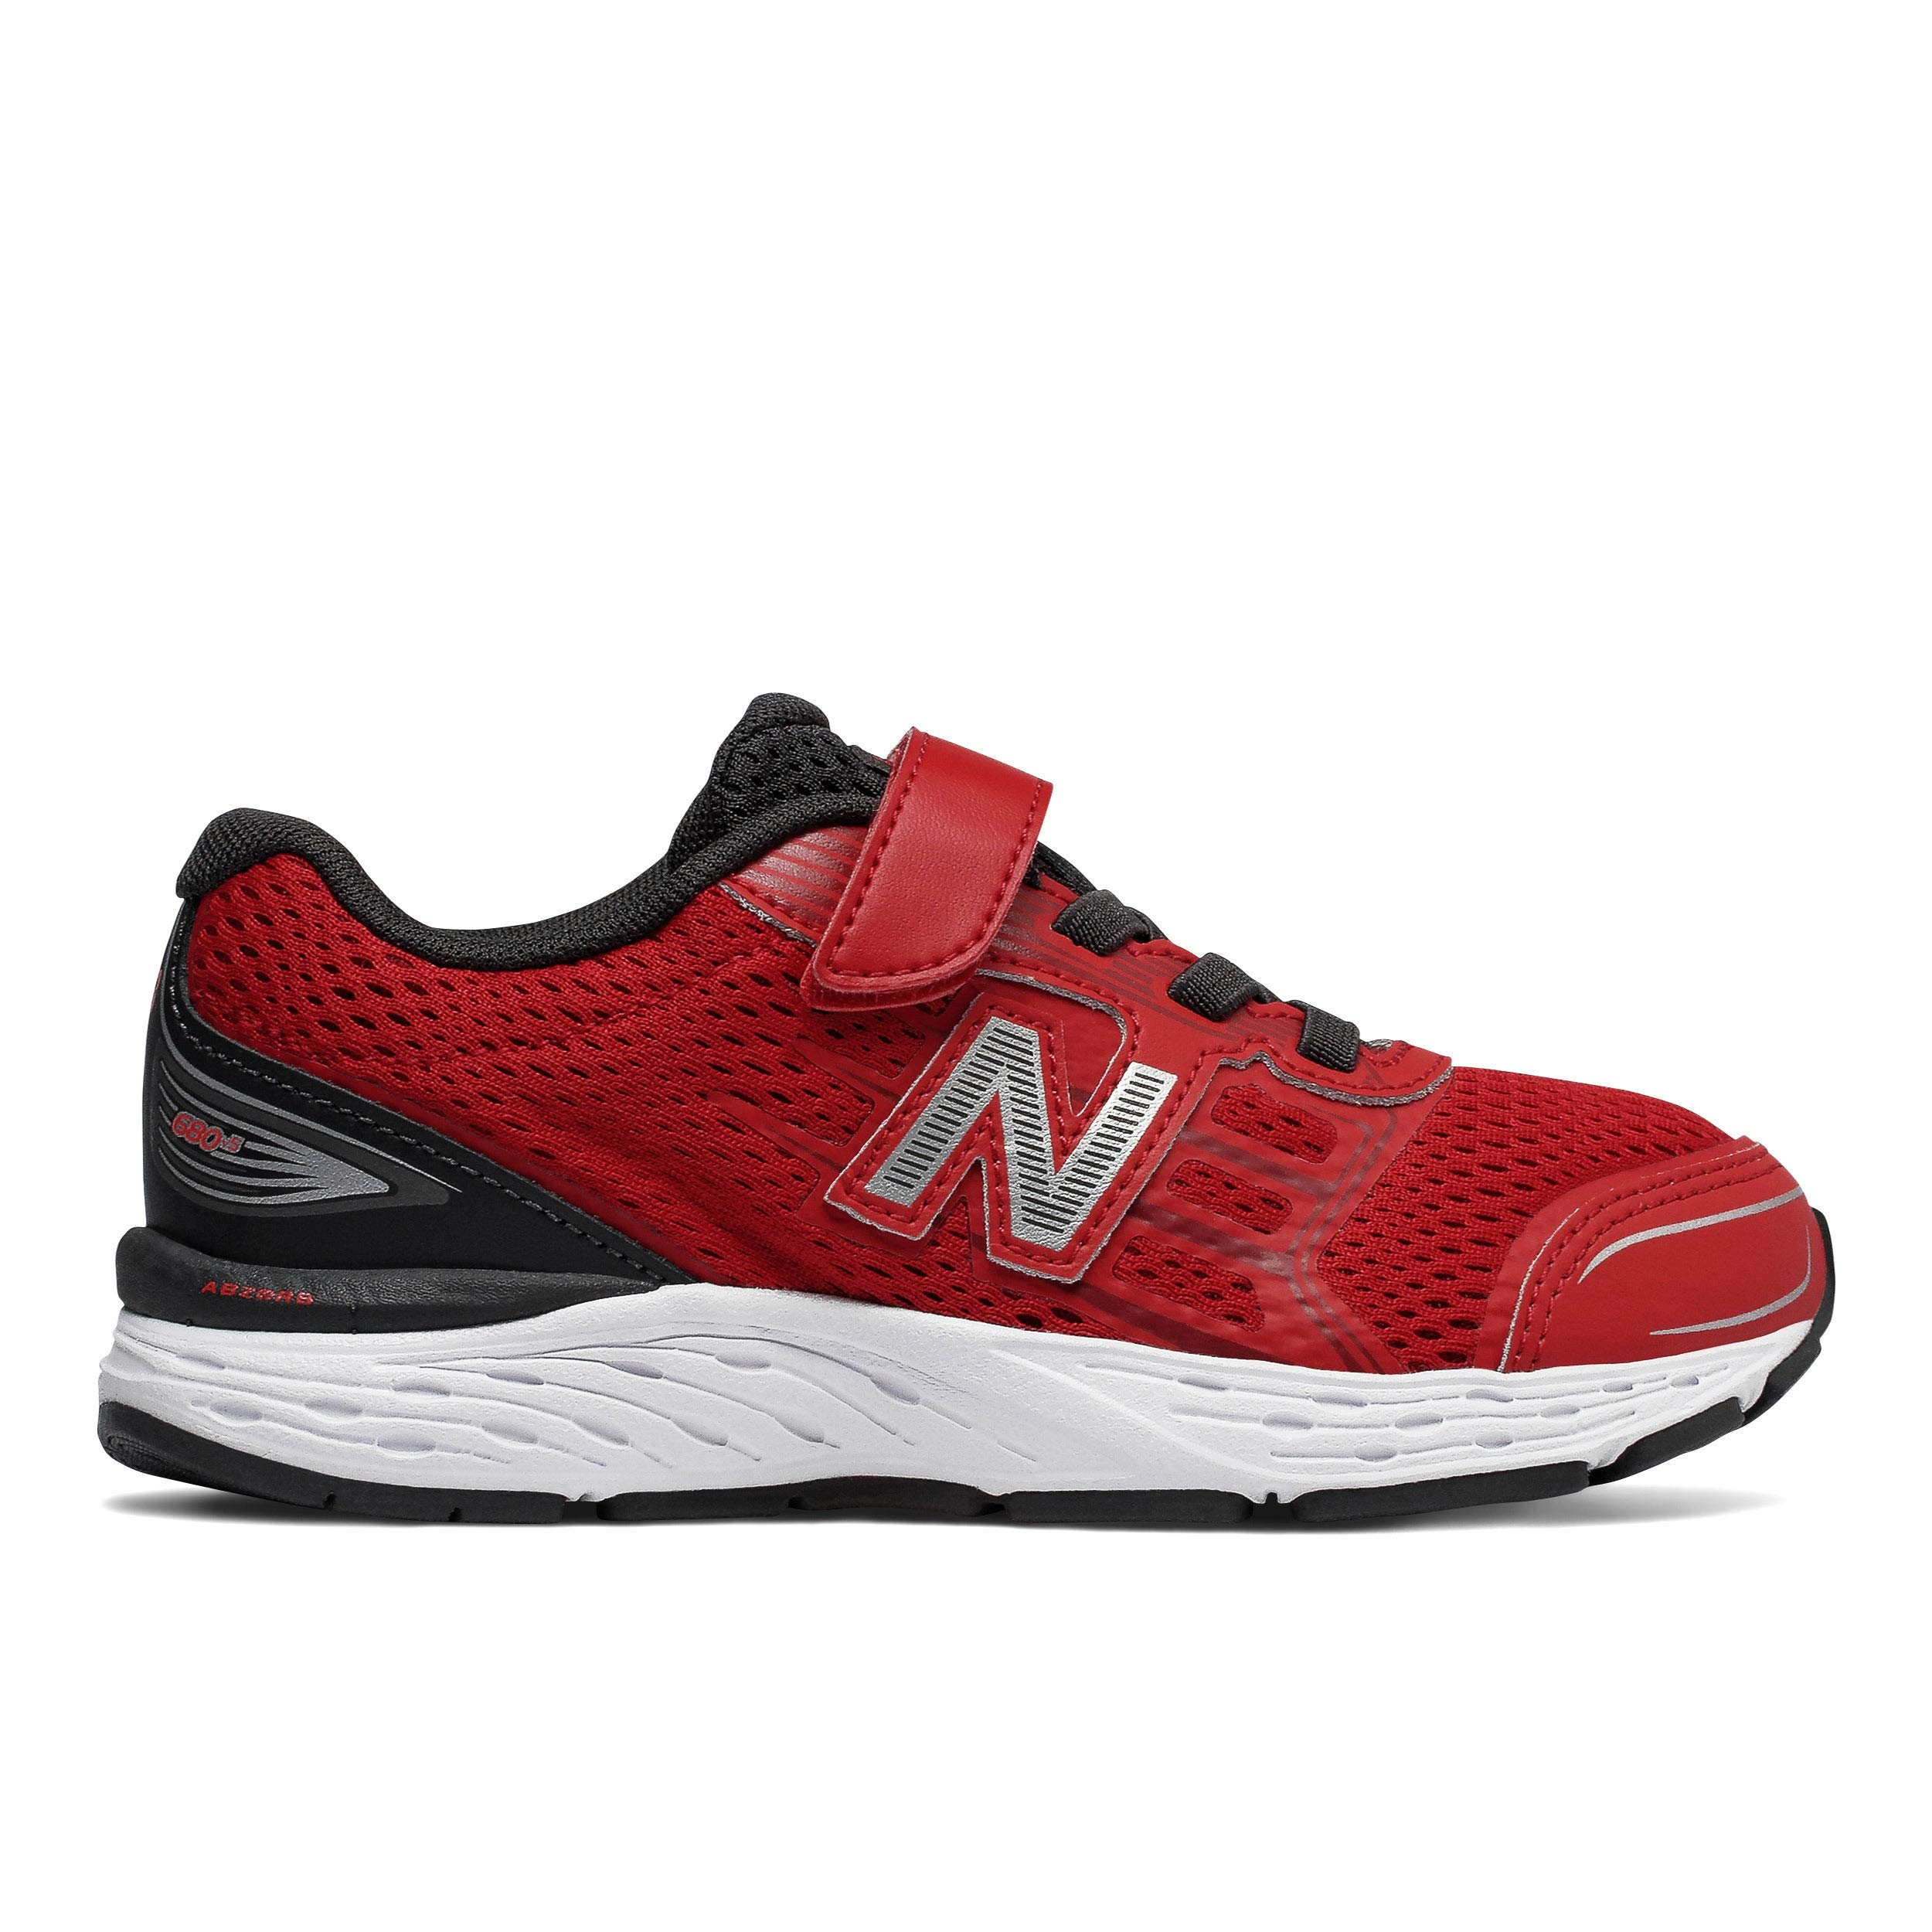 New Balance Boy's 680V5 Hook and Loop Running Shoe, Team Red/Phantom, 7 M US Toddler